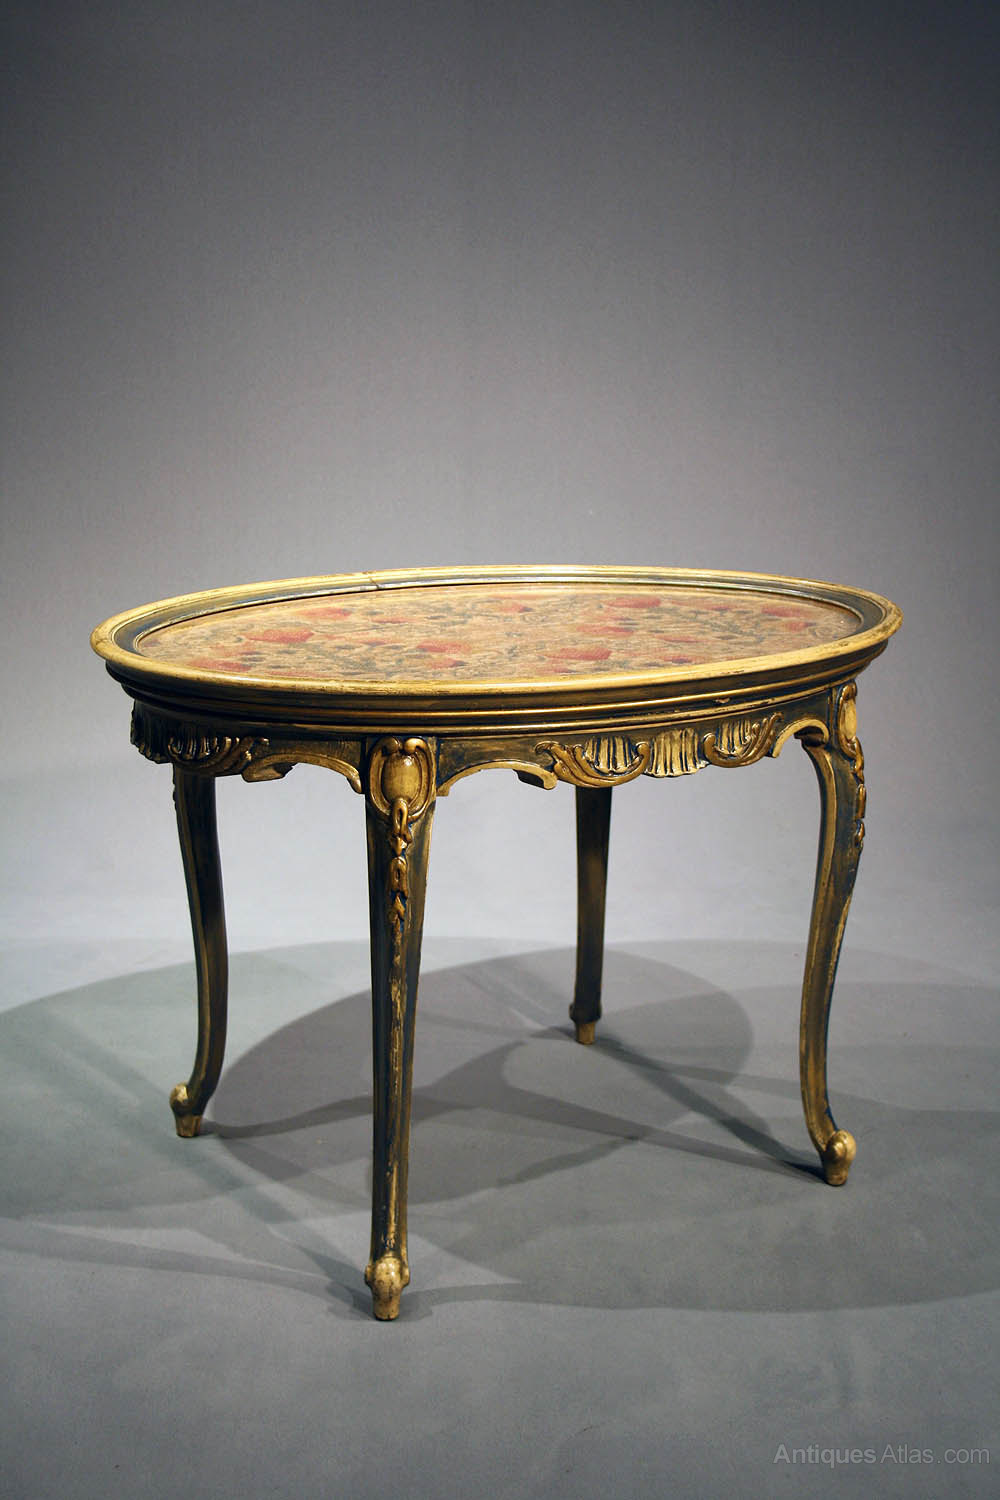 antique oval painted coffee table antiques atlas. Black Bedroom Furniture Sets. Home Design Ideas